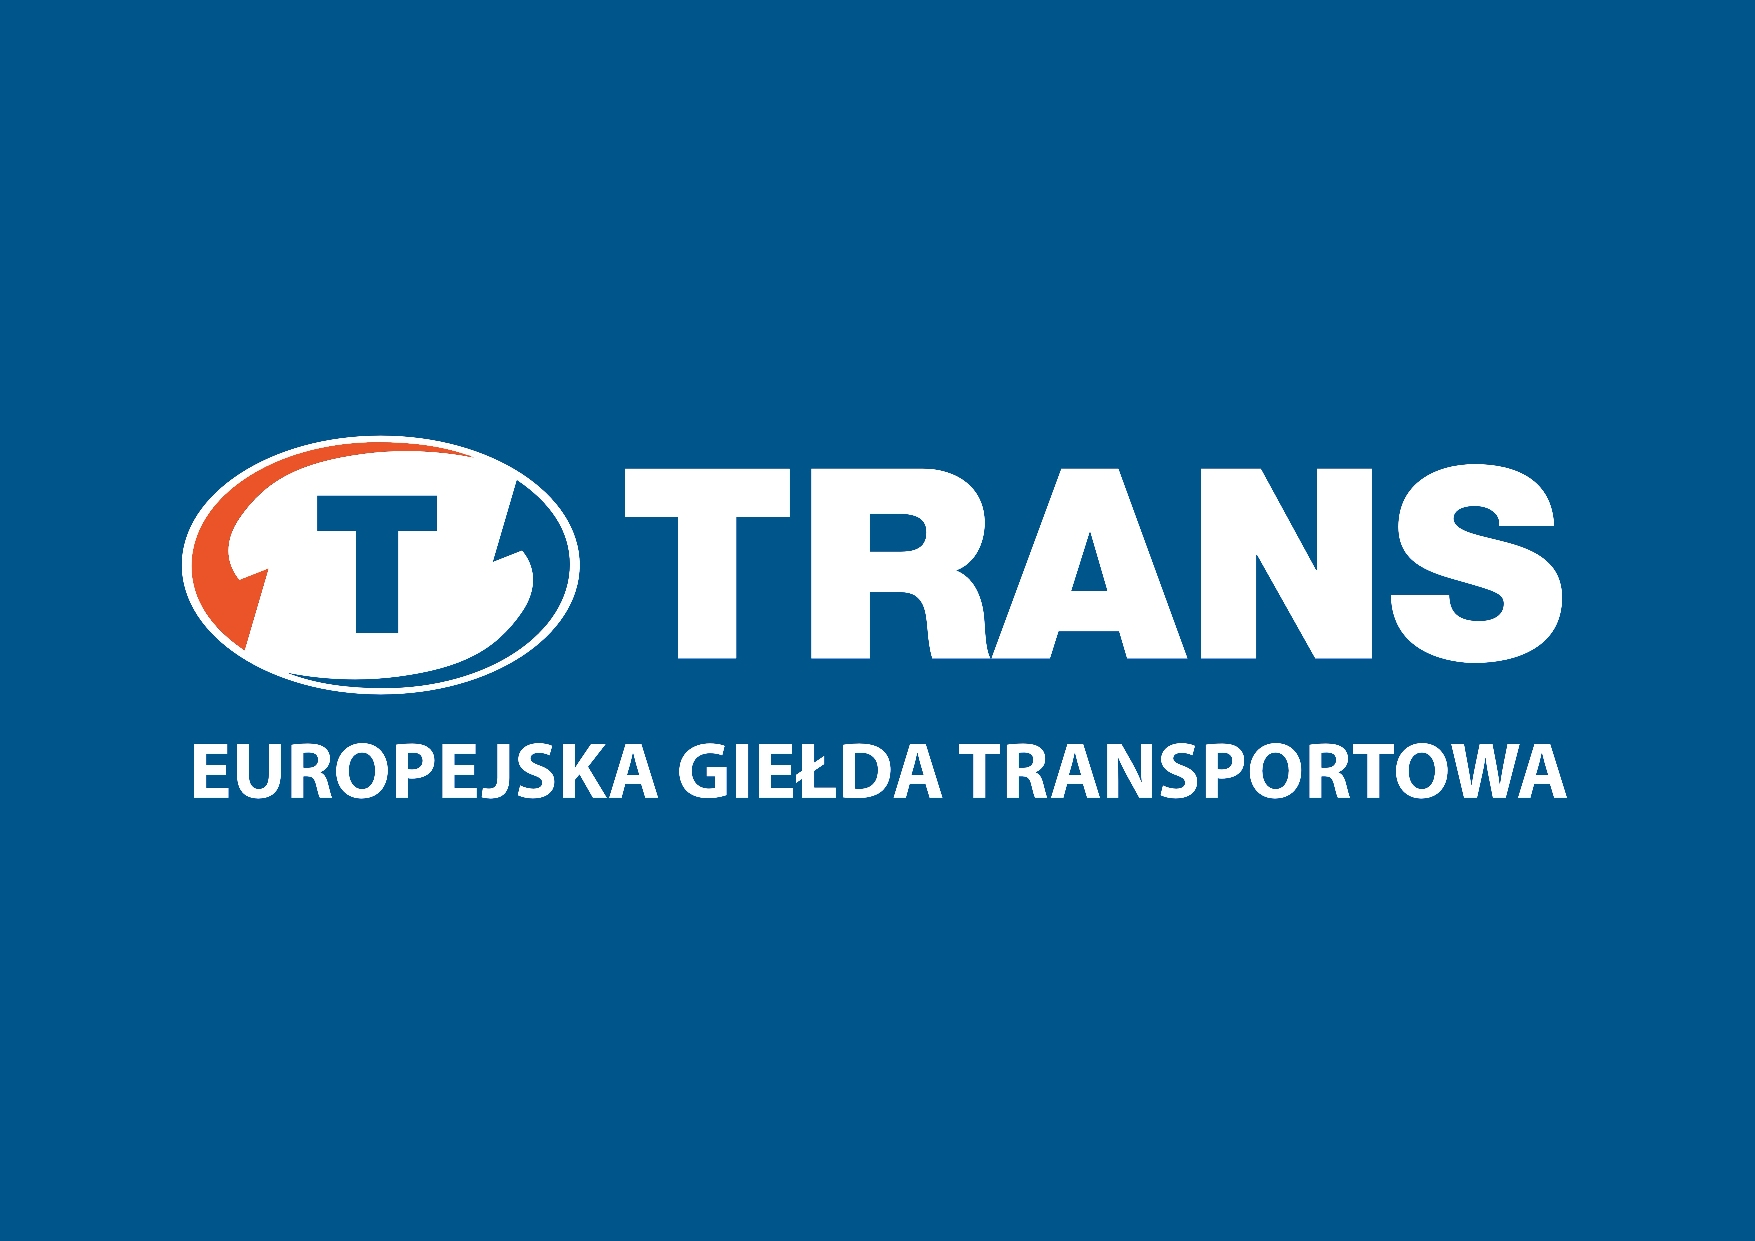 trans european plastics Free essays on trans european plastics for students use our papers to help you with yours 1 - 30.